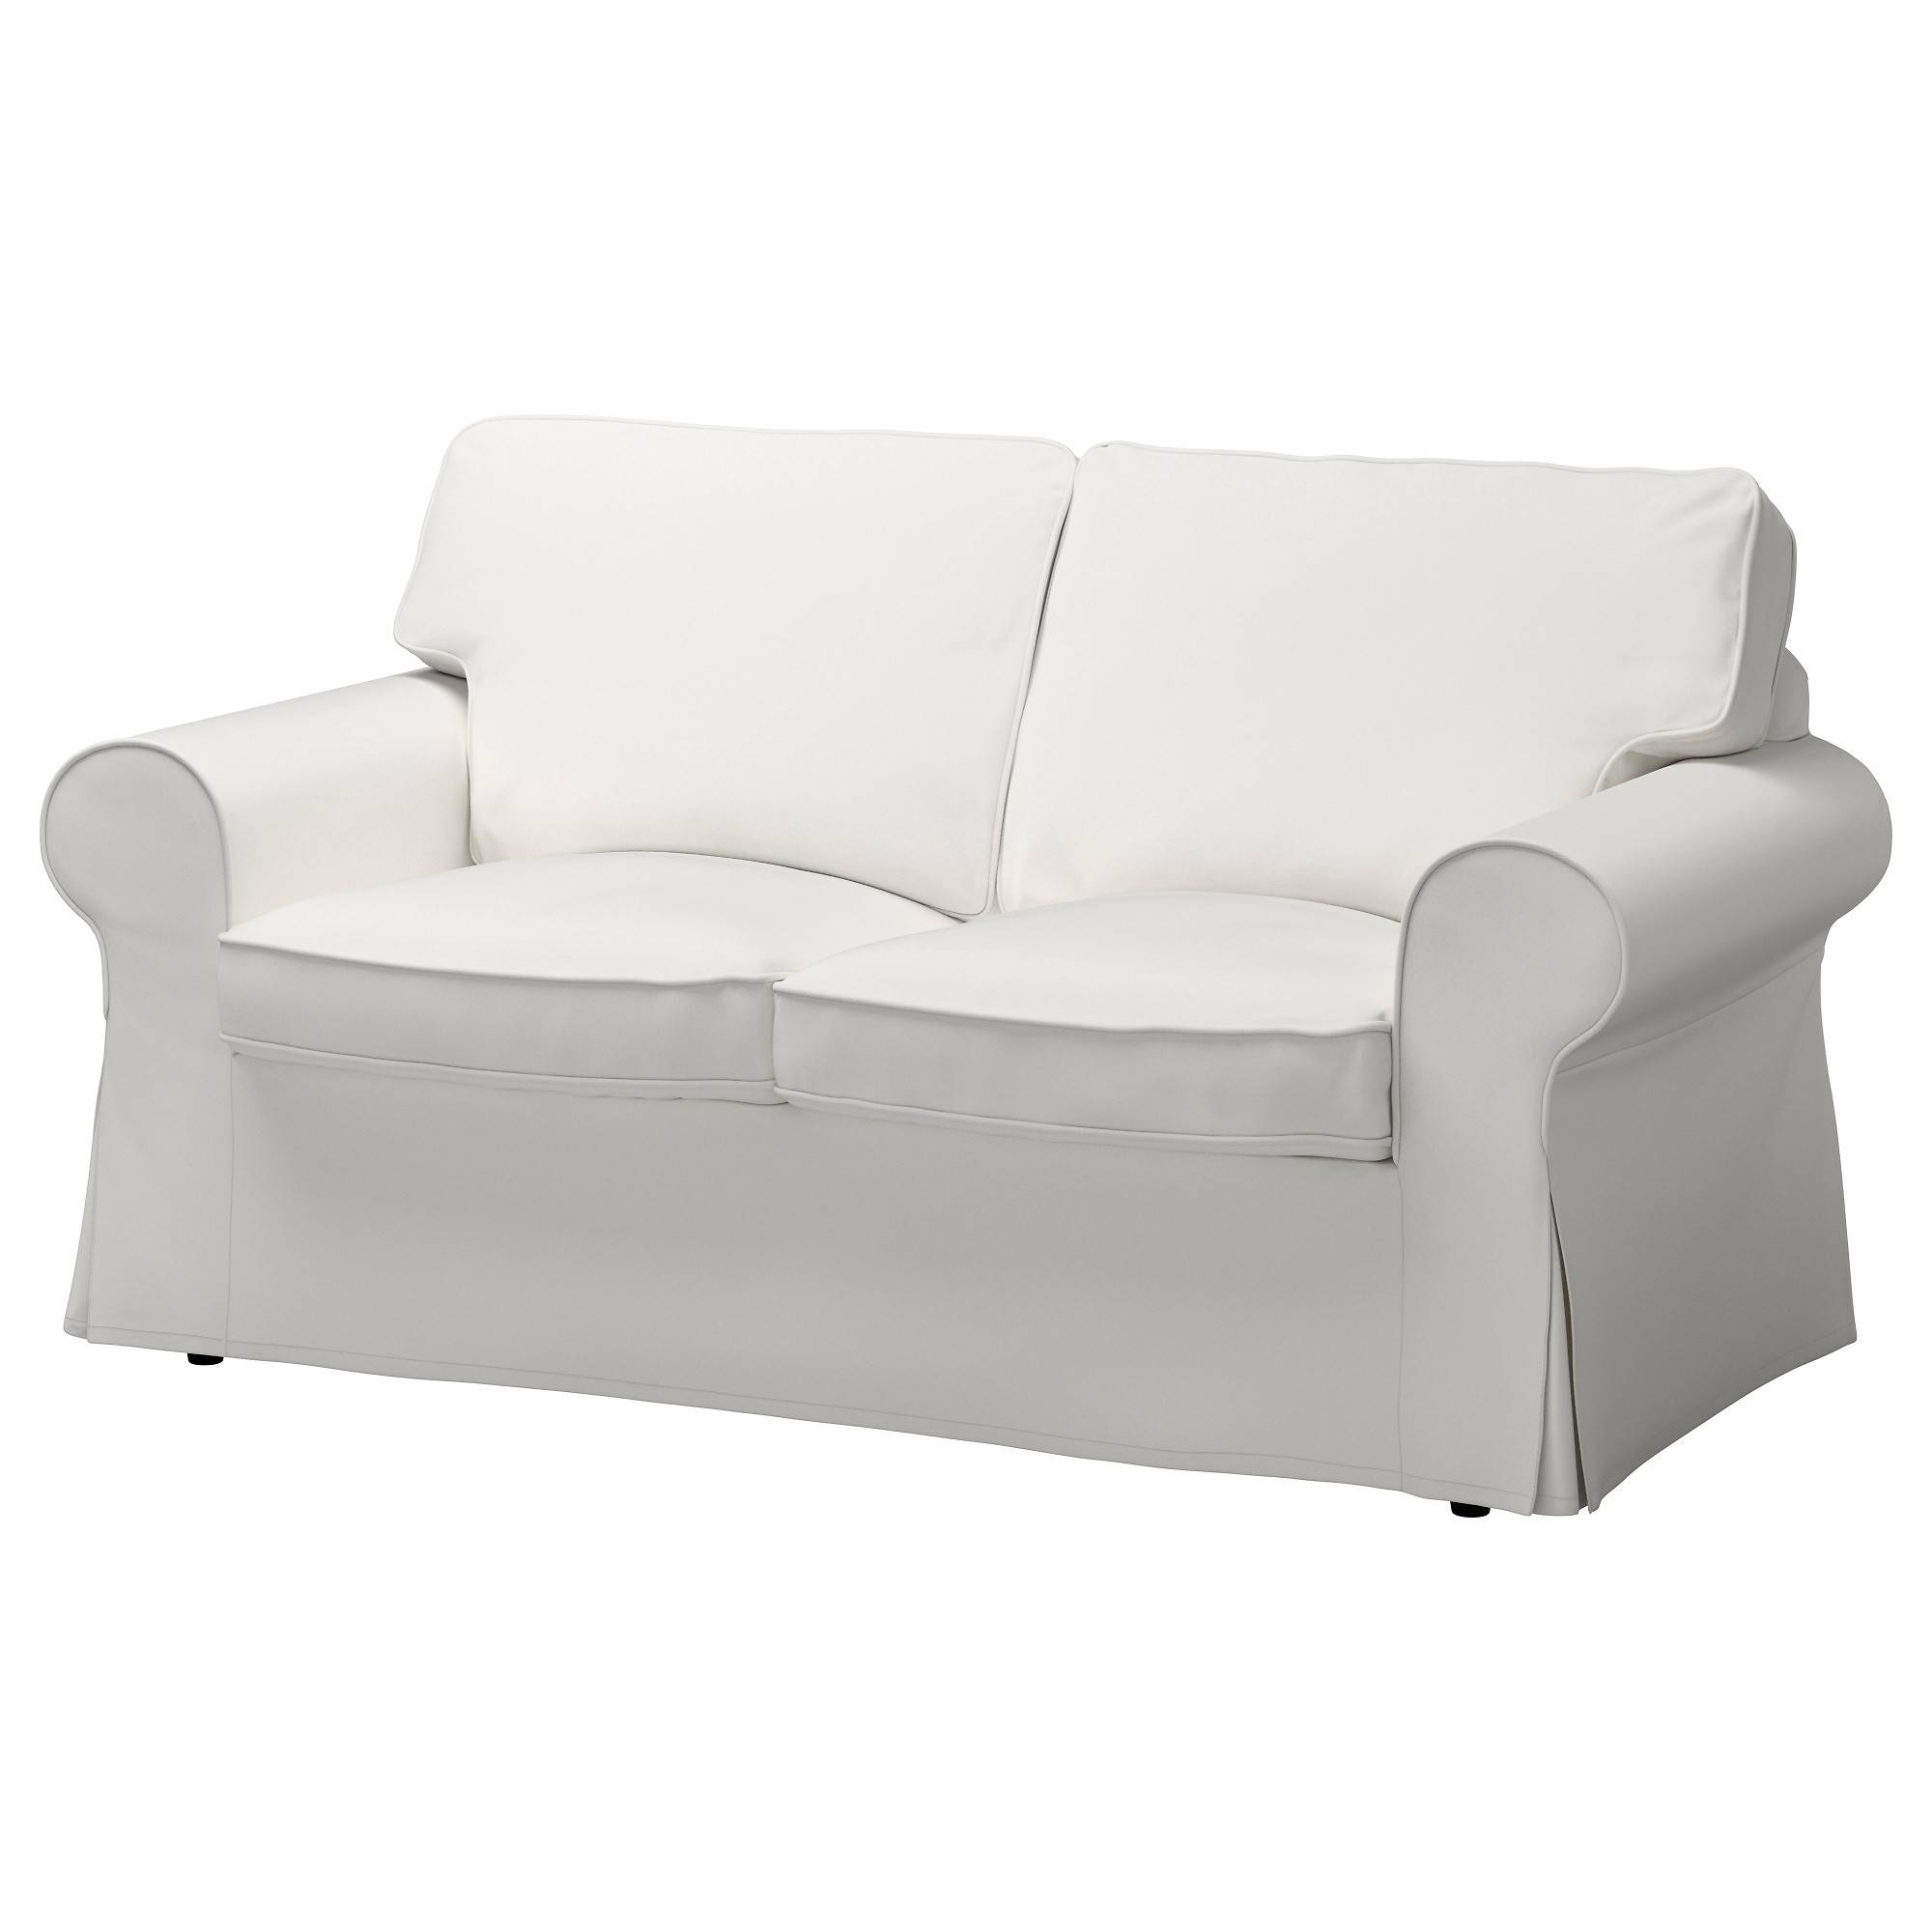 Fabric Sofas - Modern & Contemporary - Ikea pertaining to White Sofa Chairs (Image 8 of 30)